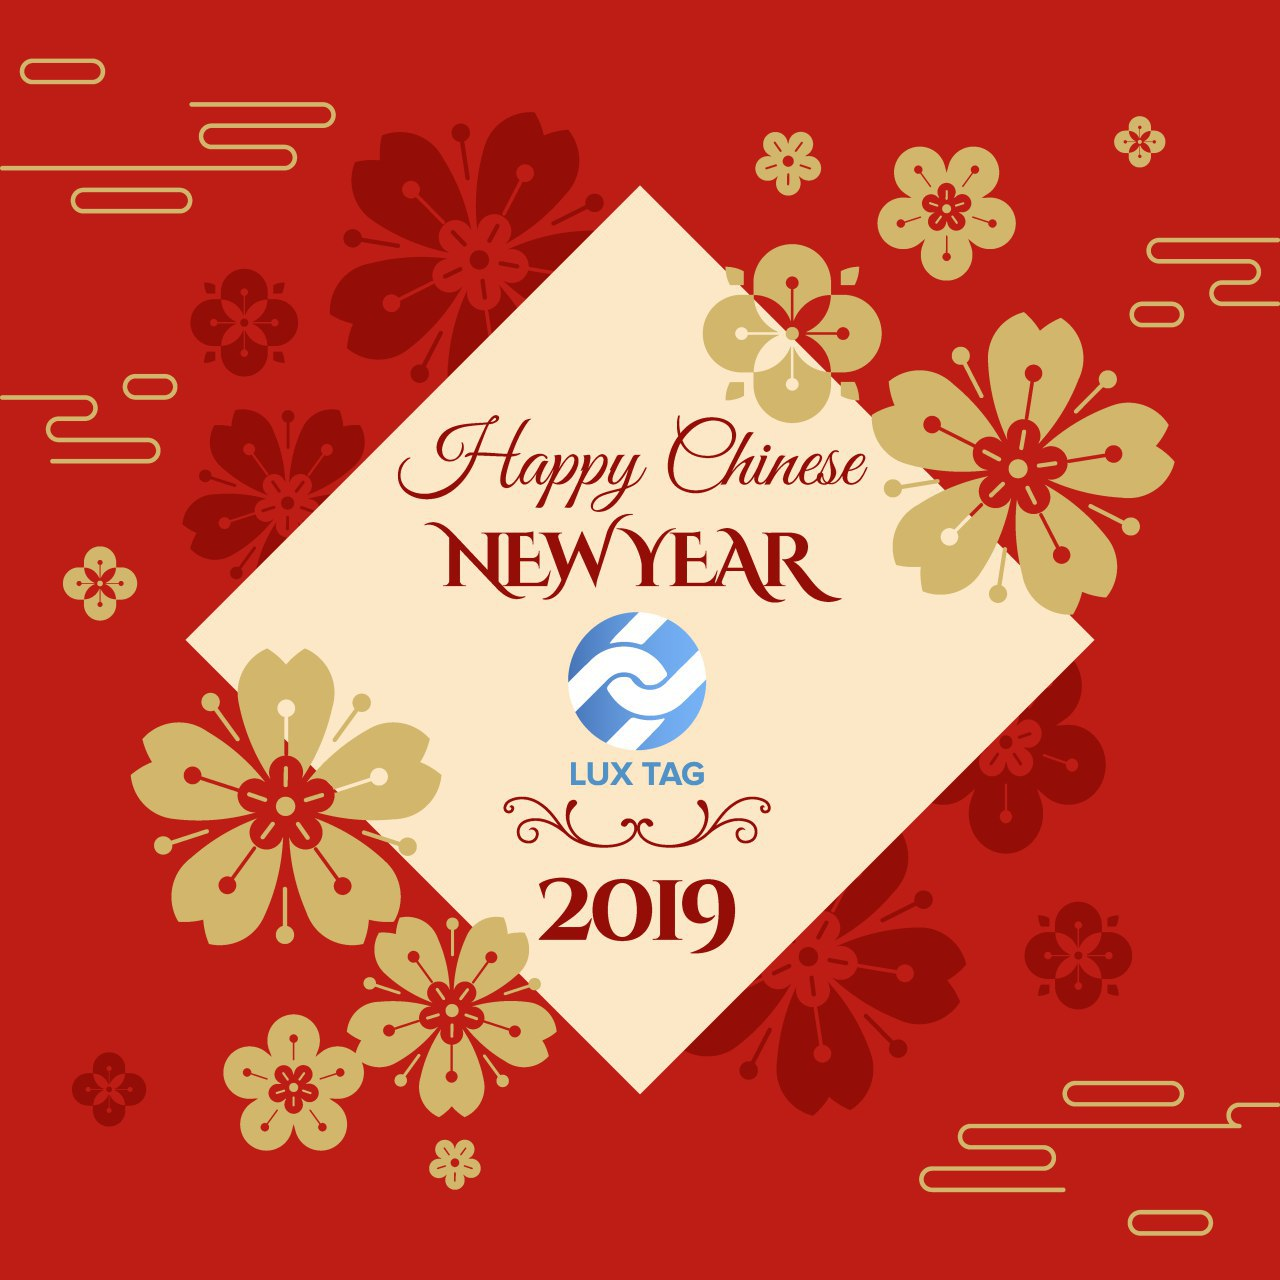 LuxTag Wishes You A Happy Chinese New Year!